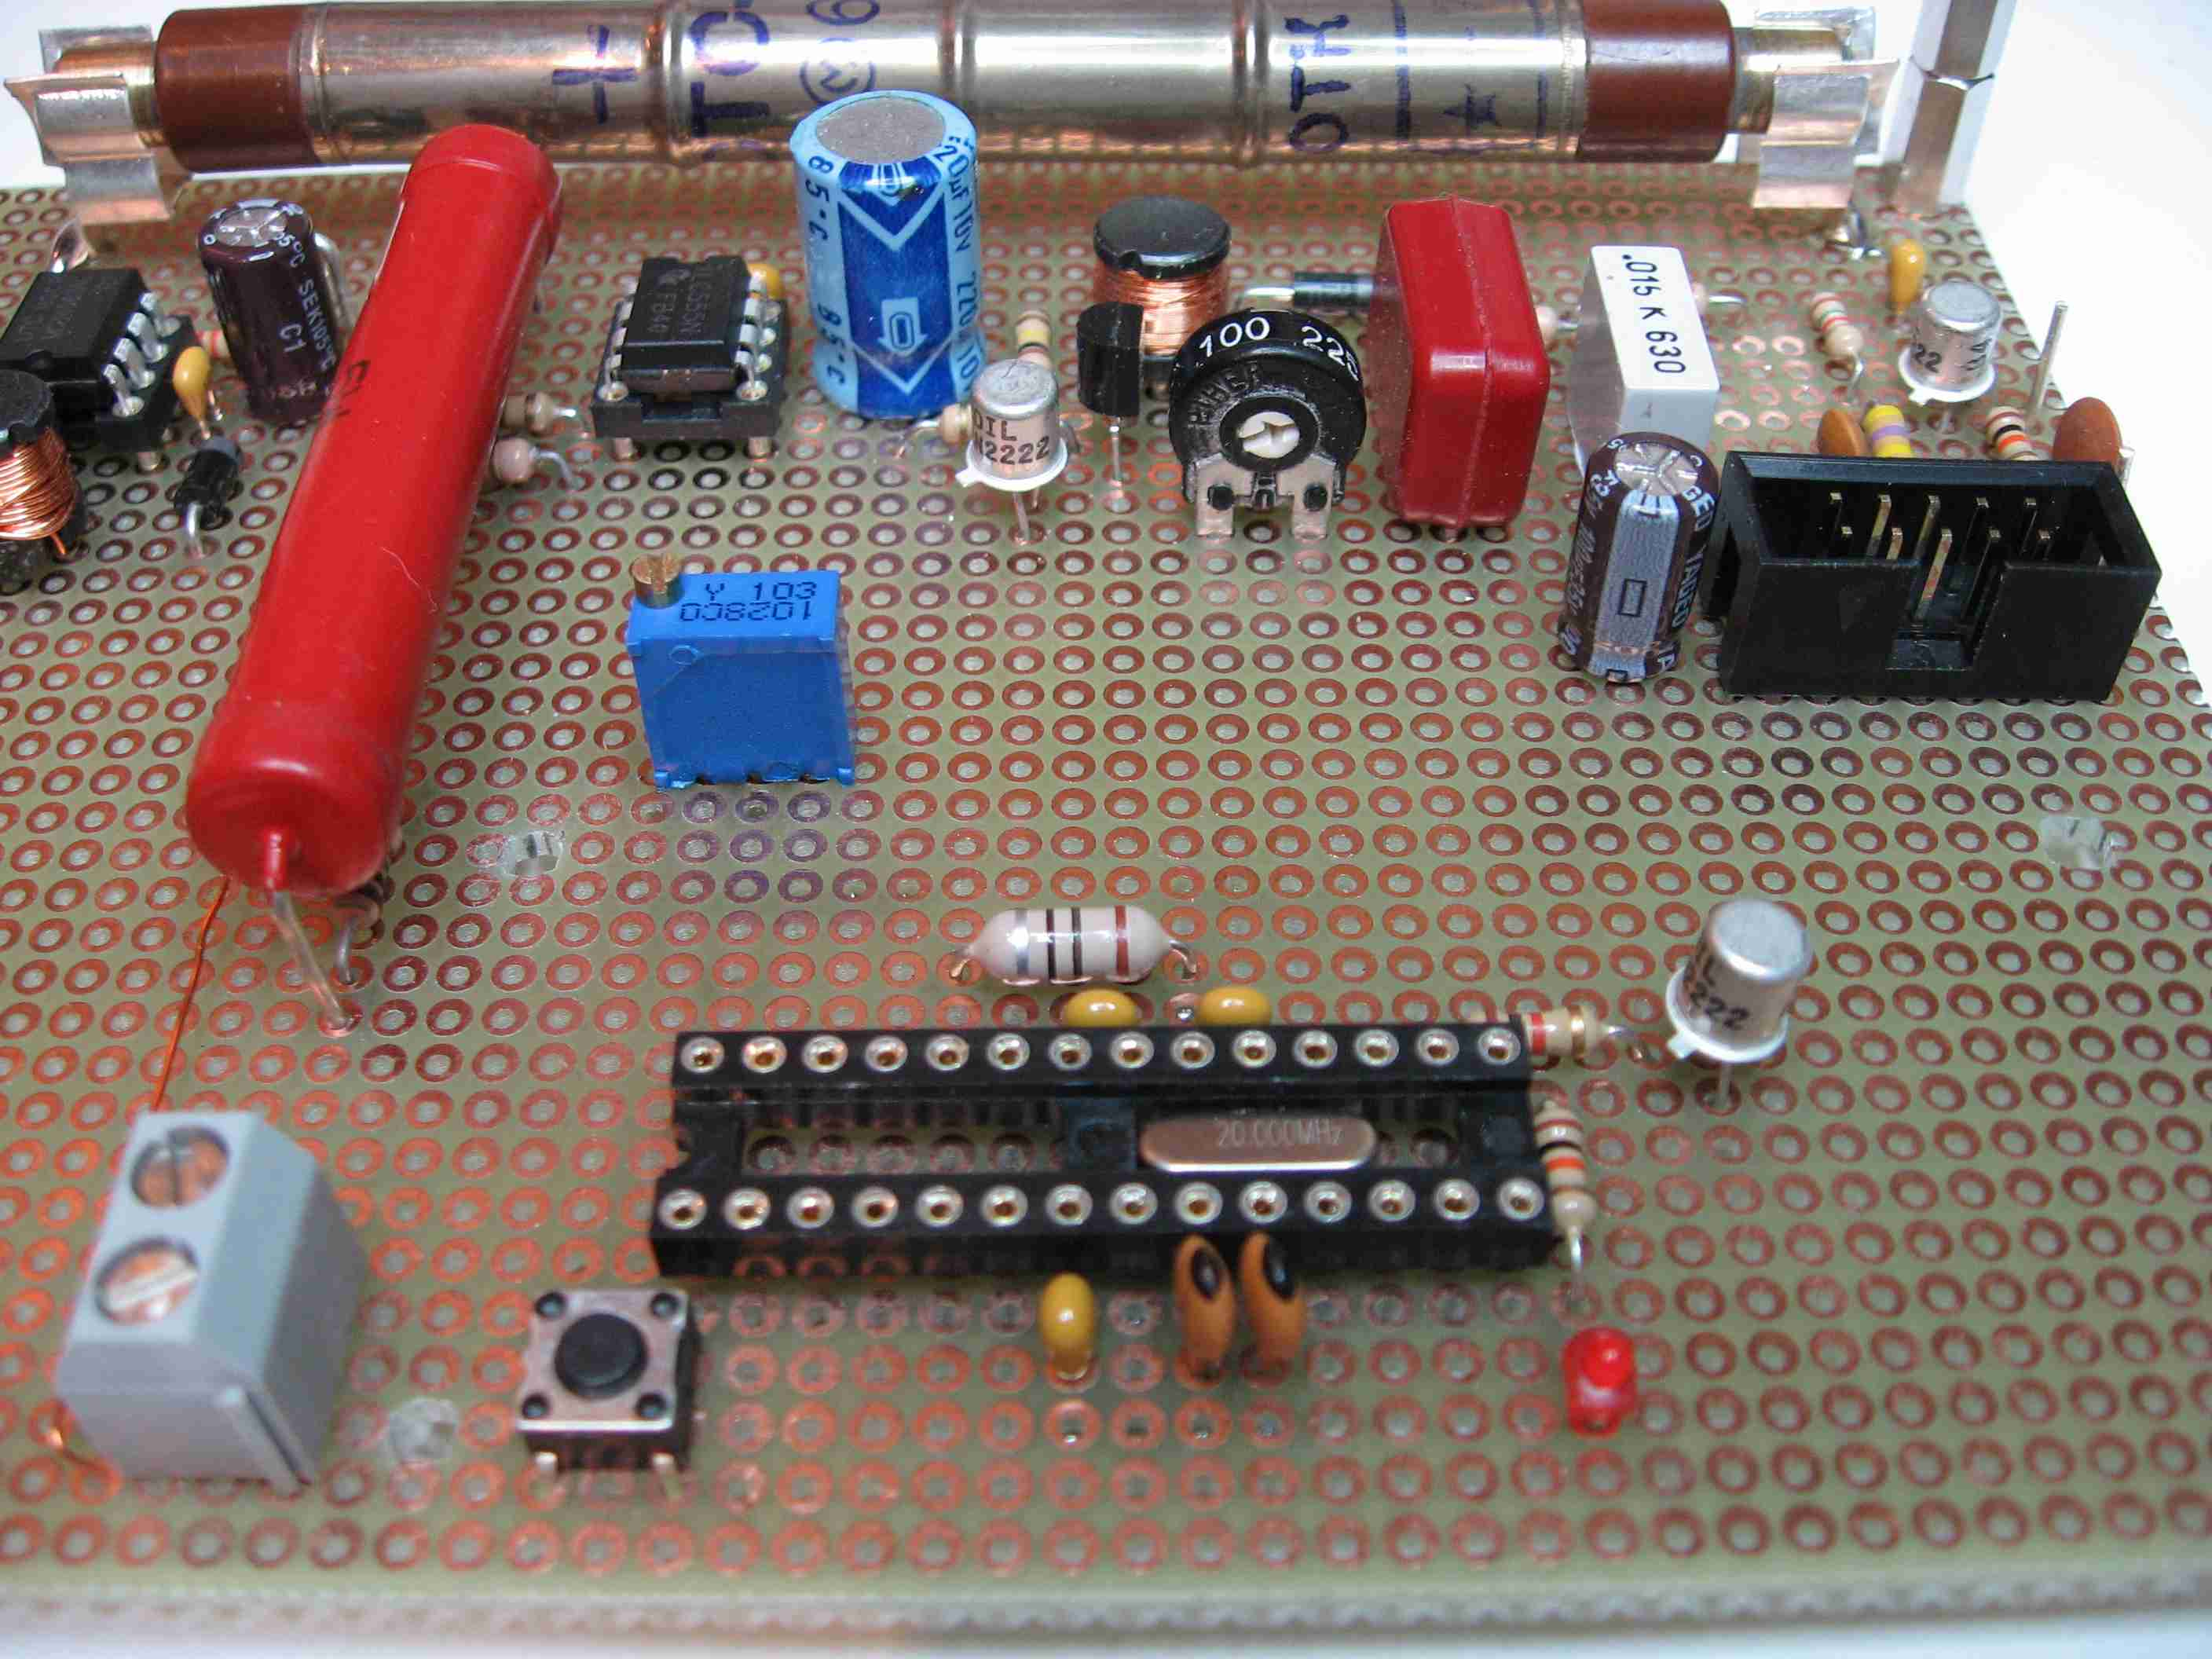 Aktives 21 Lautsprechersystem Fr Den Pc Geiger Counter With Usb Interface Schematics Figure 1 Home Made 2 Pcb Perf Board